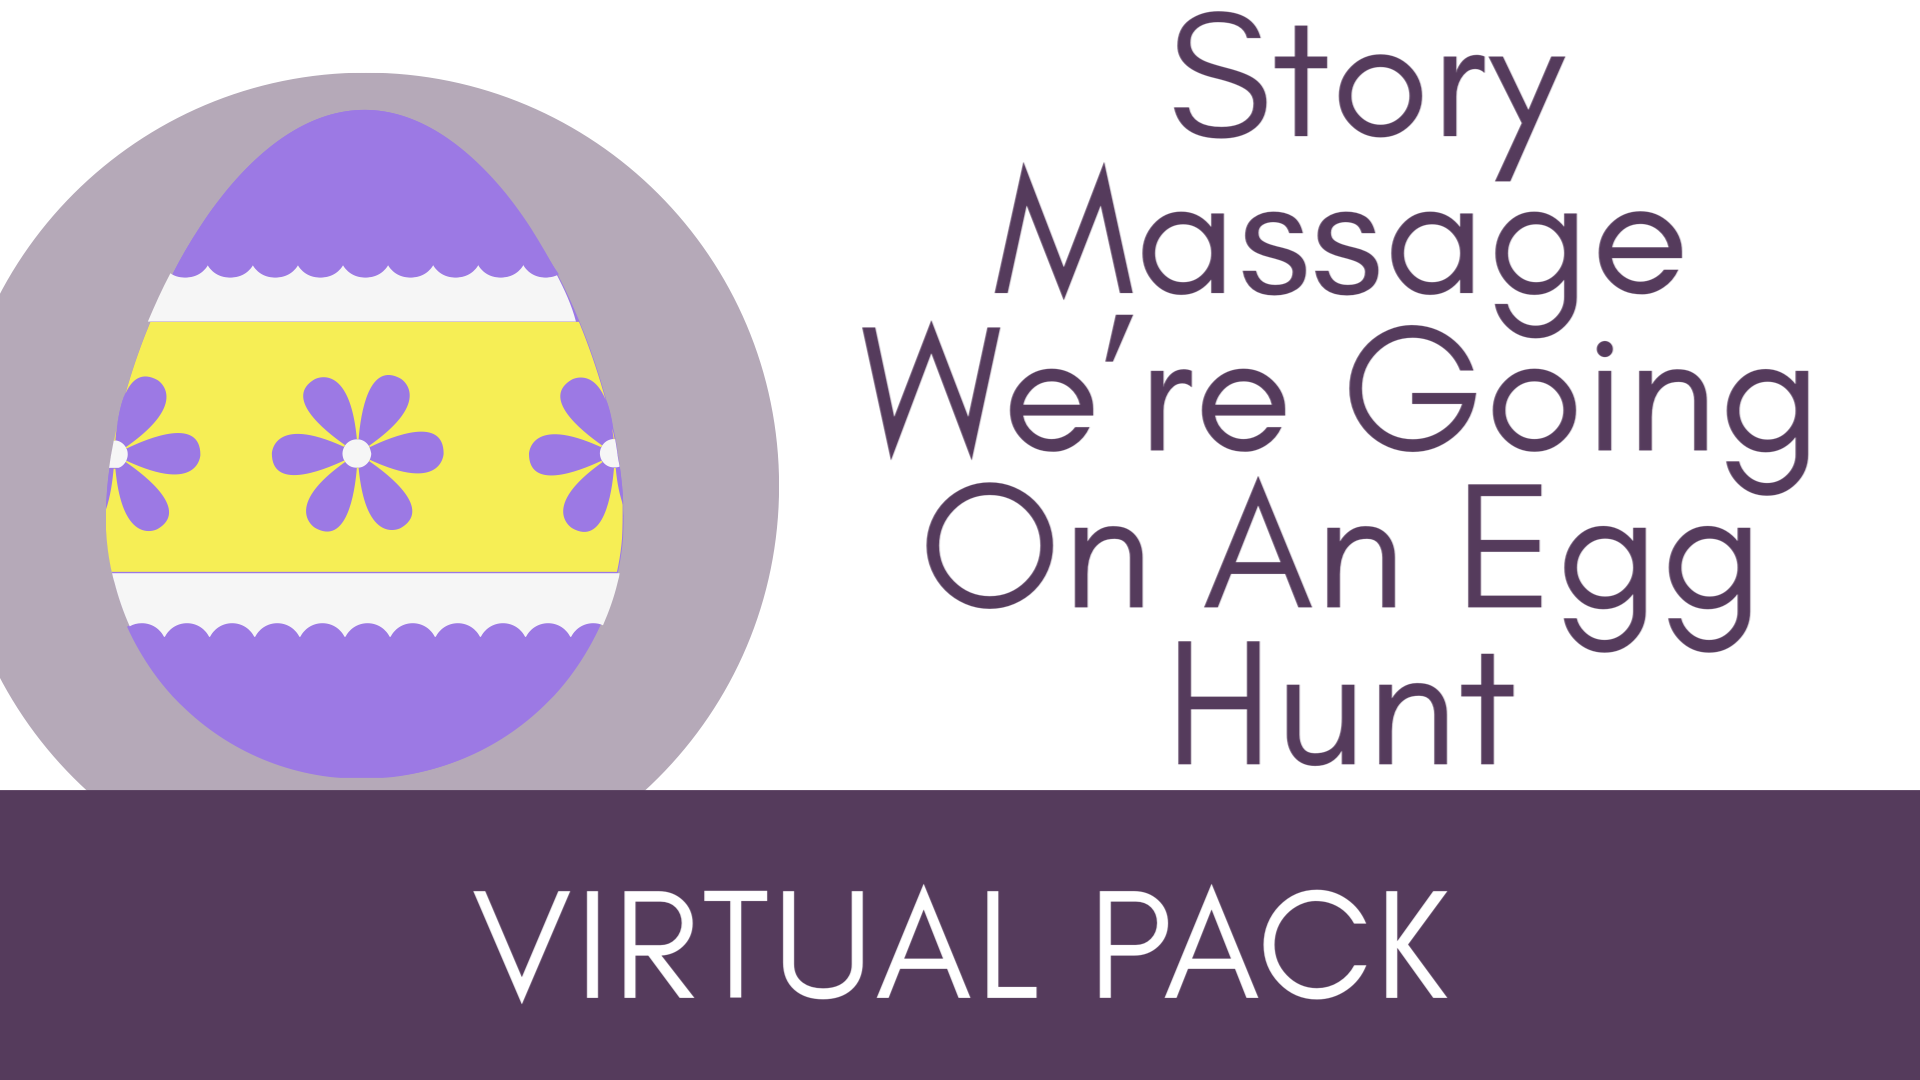 Story Massage We're Going On An Egg Hunt Virtual Packs